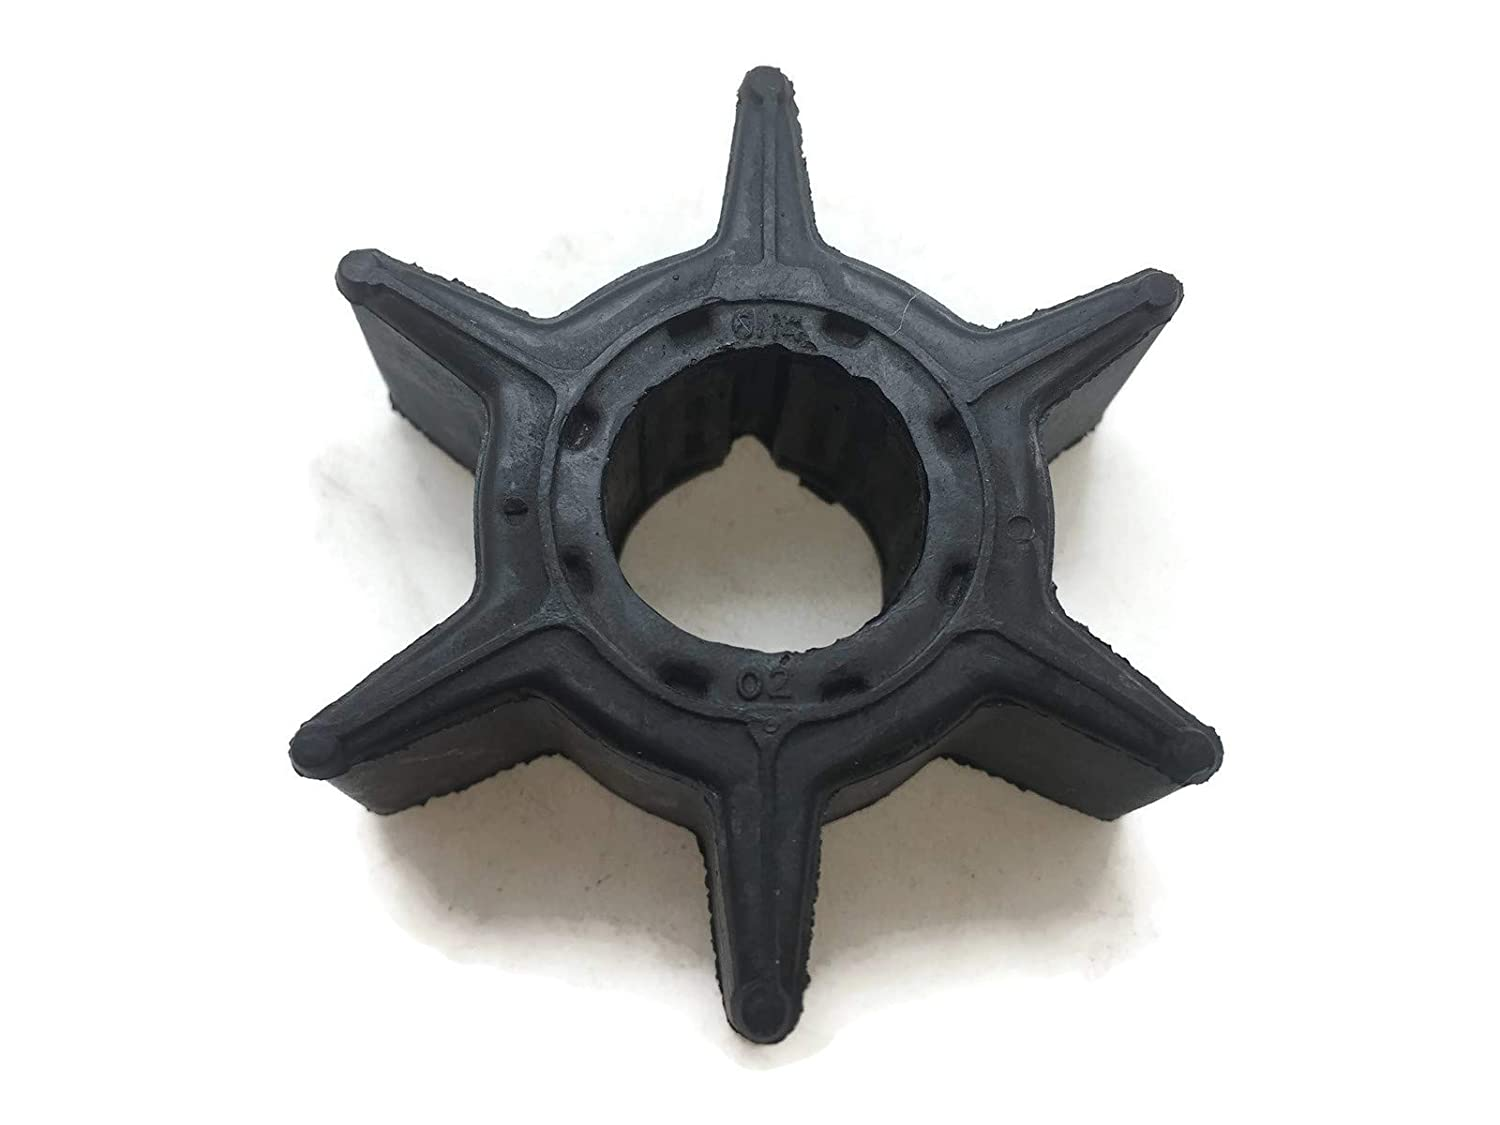 ITACO Water Pump Impeller Yamaha Outboard 6H4-44352-02 6H4-44352-00 6H4-44352-01 676-44352-01 Outboard Motor F 25 30 40 P50 60 HP